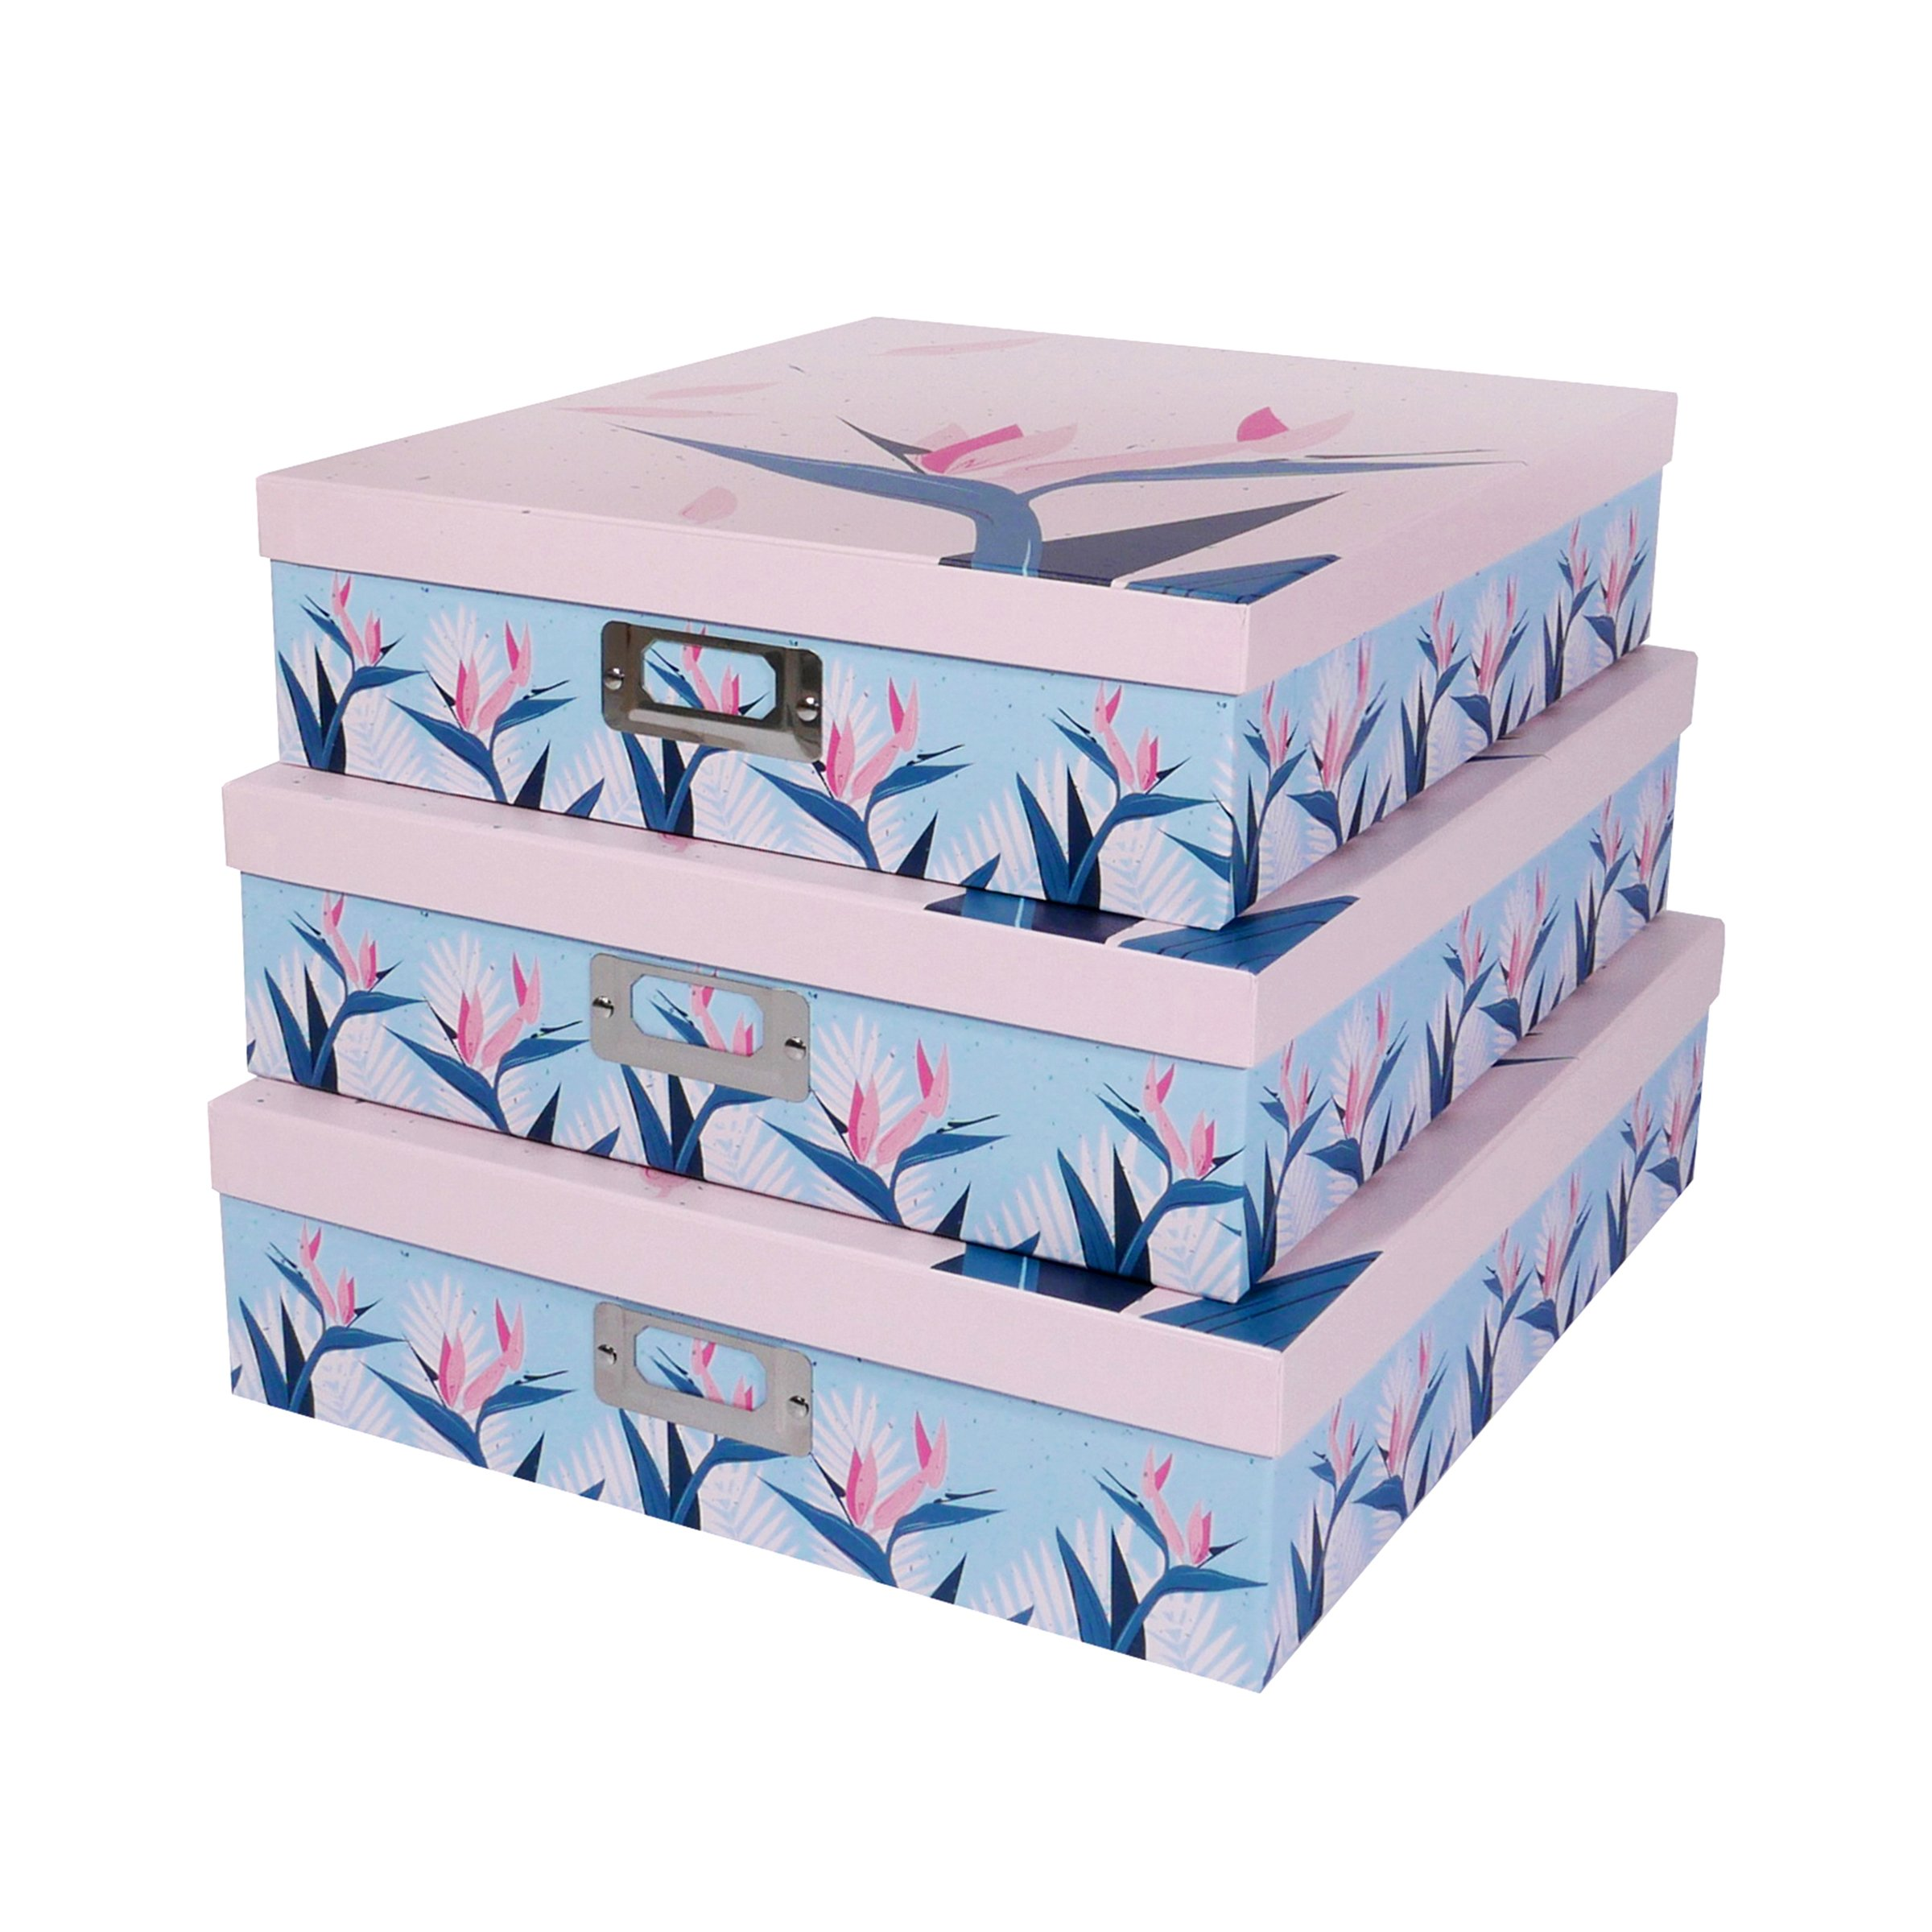 SLPR Office Storage Cardboard Boxes with Metal Plate (Set of 3, Tropical)   Nesting Gift Boxes with Lid for Keepsake Toys Photos Memories Closet Nursery Office Bedroom Decoration